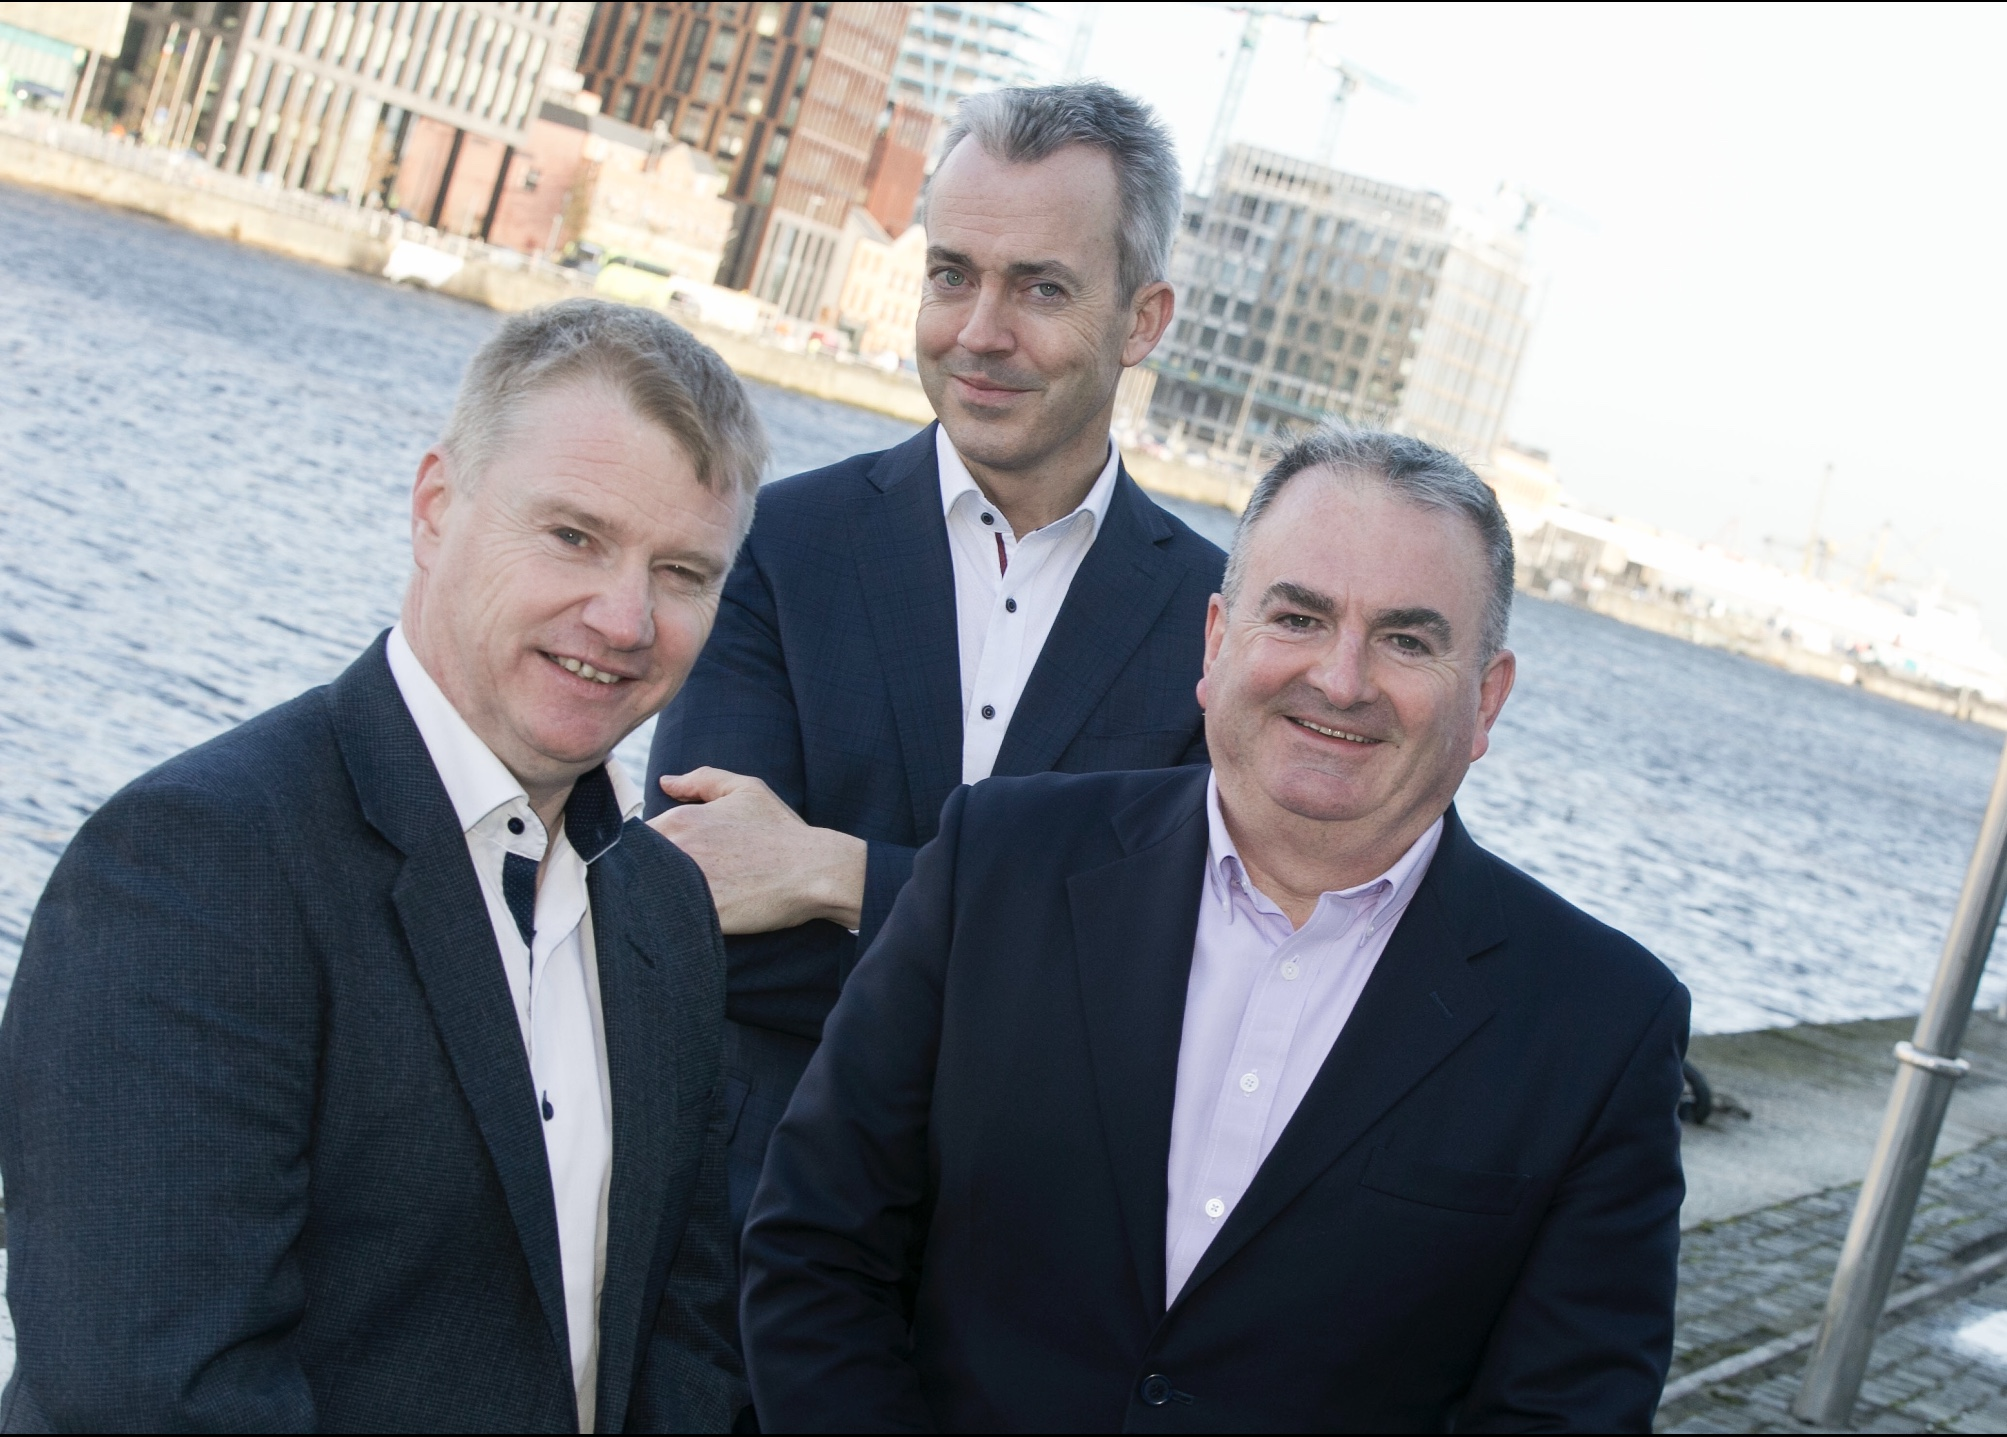 BGF completes 3rd major investment in an Irish company this year